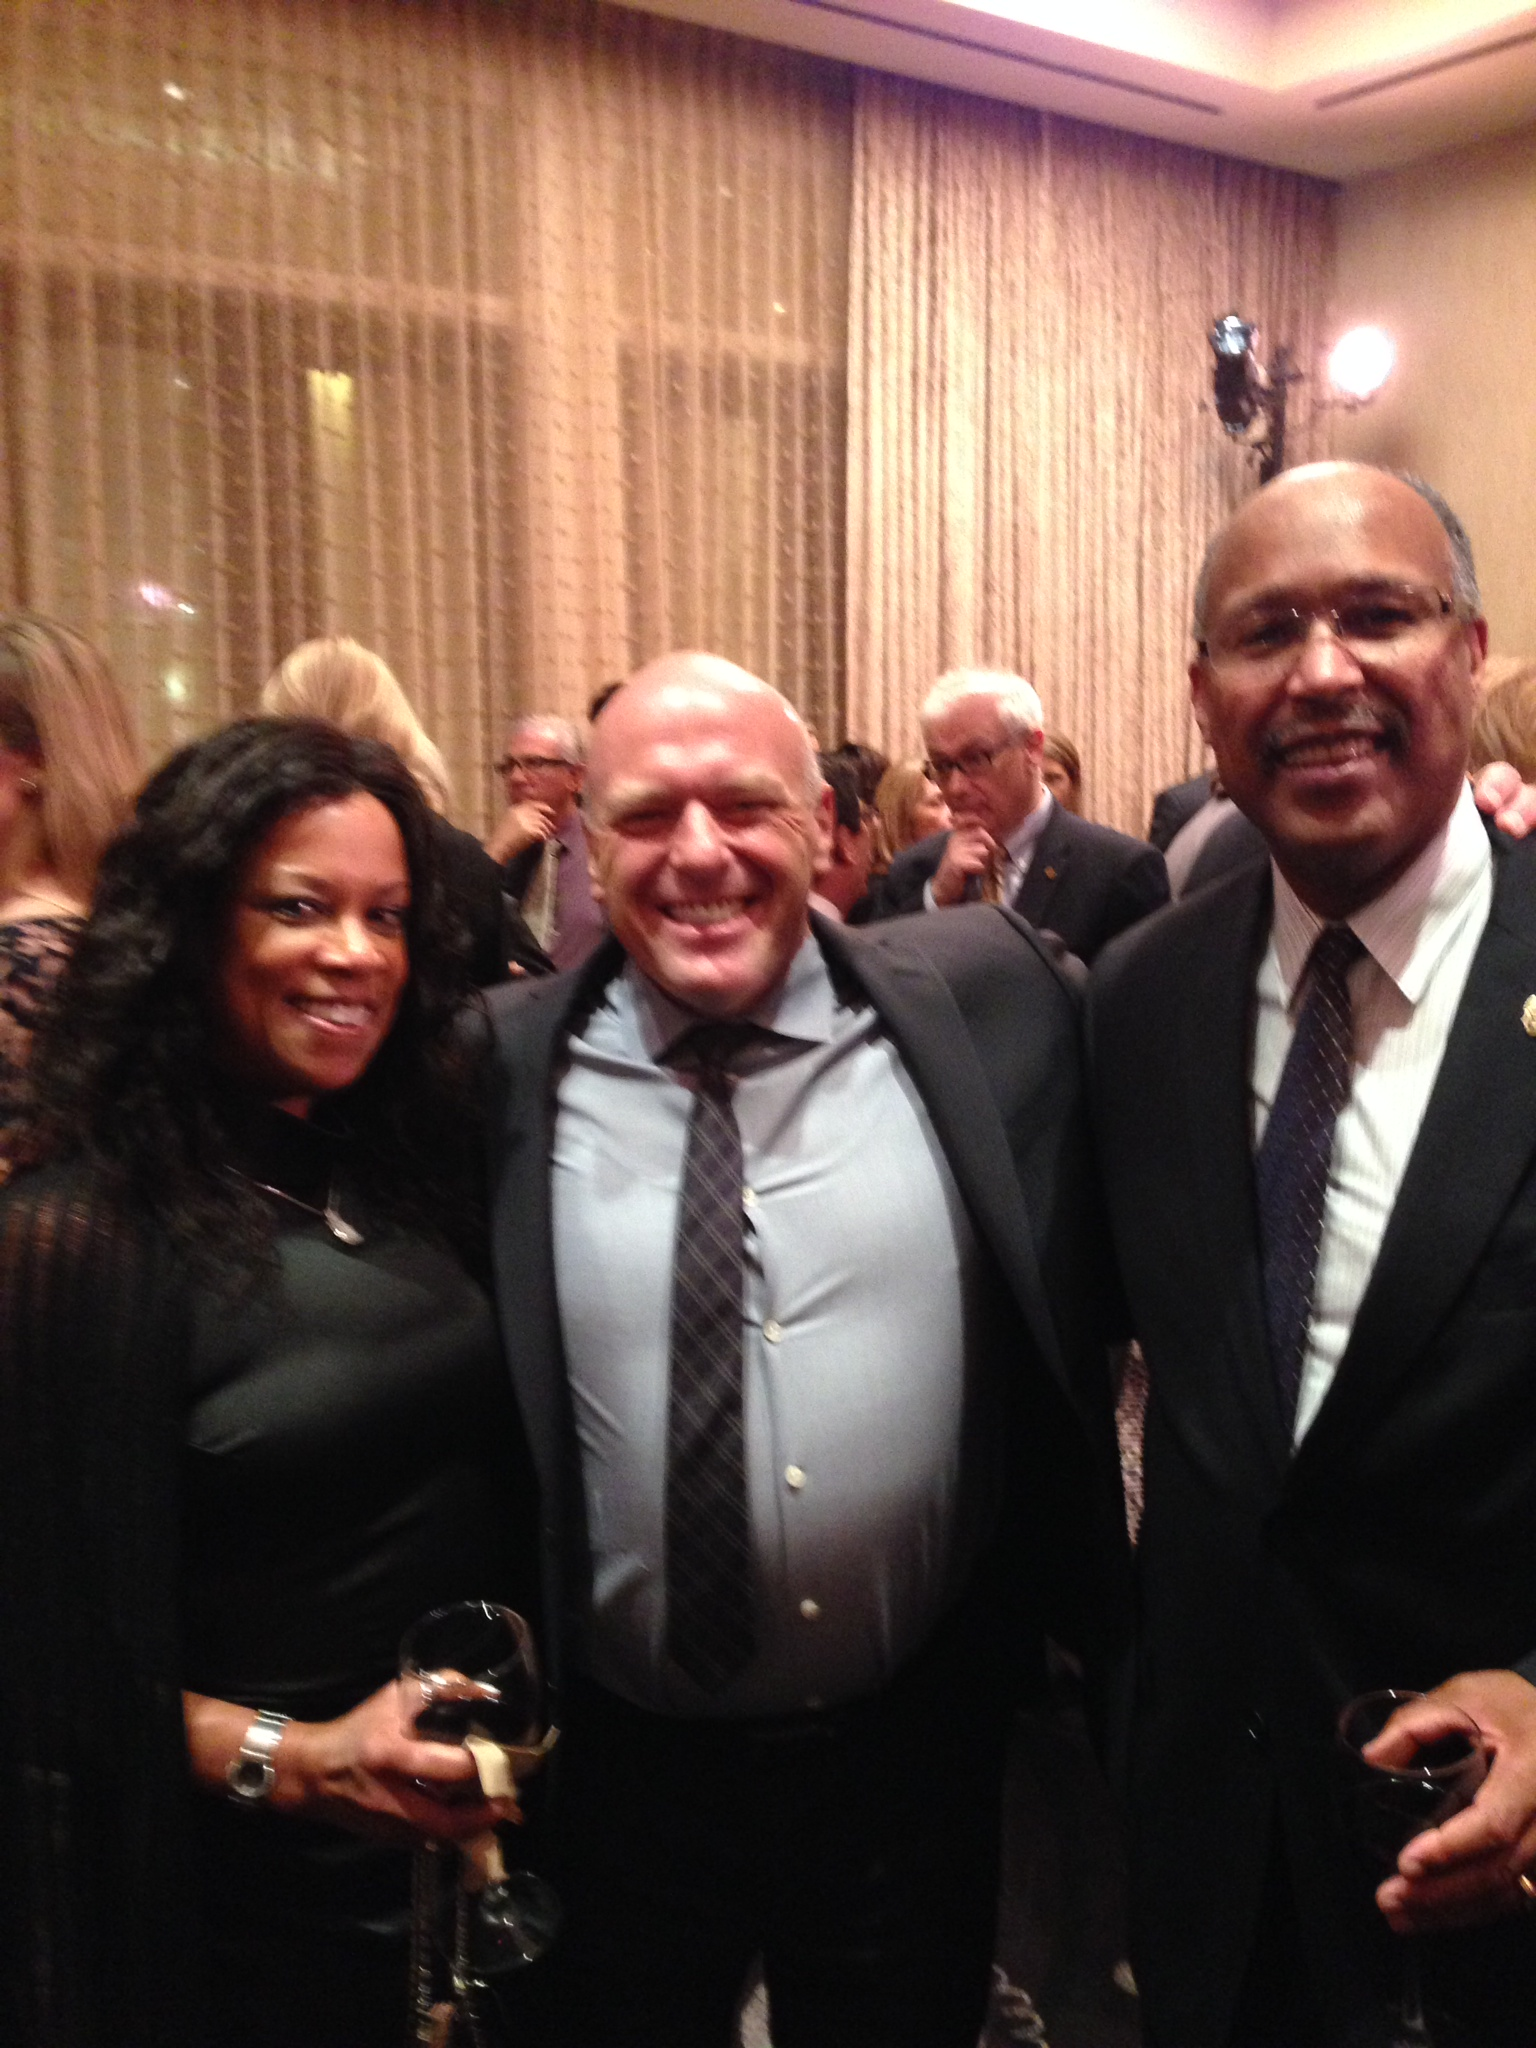 Terry and Marie Parham with Breaking Bad Star - Dean Norris (played ASAC Hank Schrader)